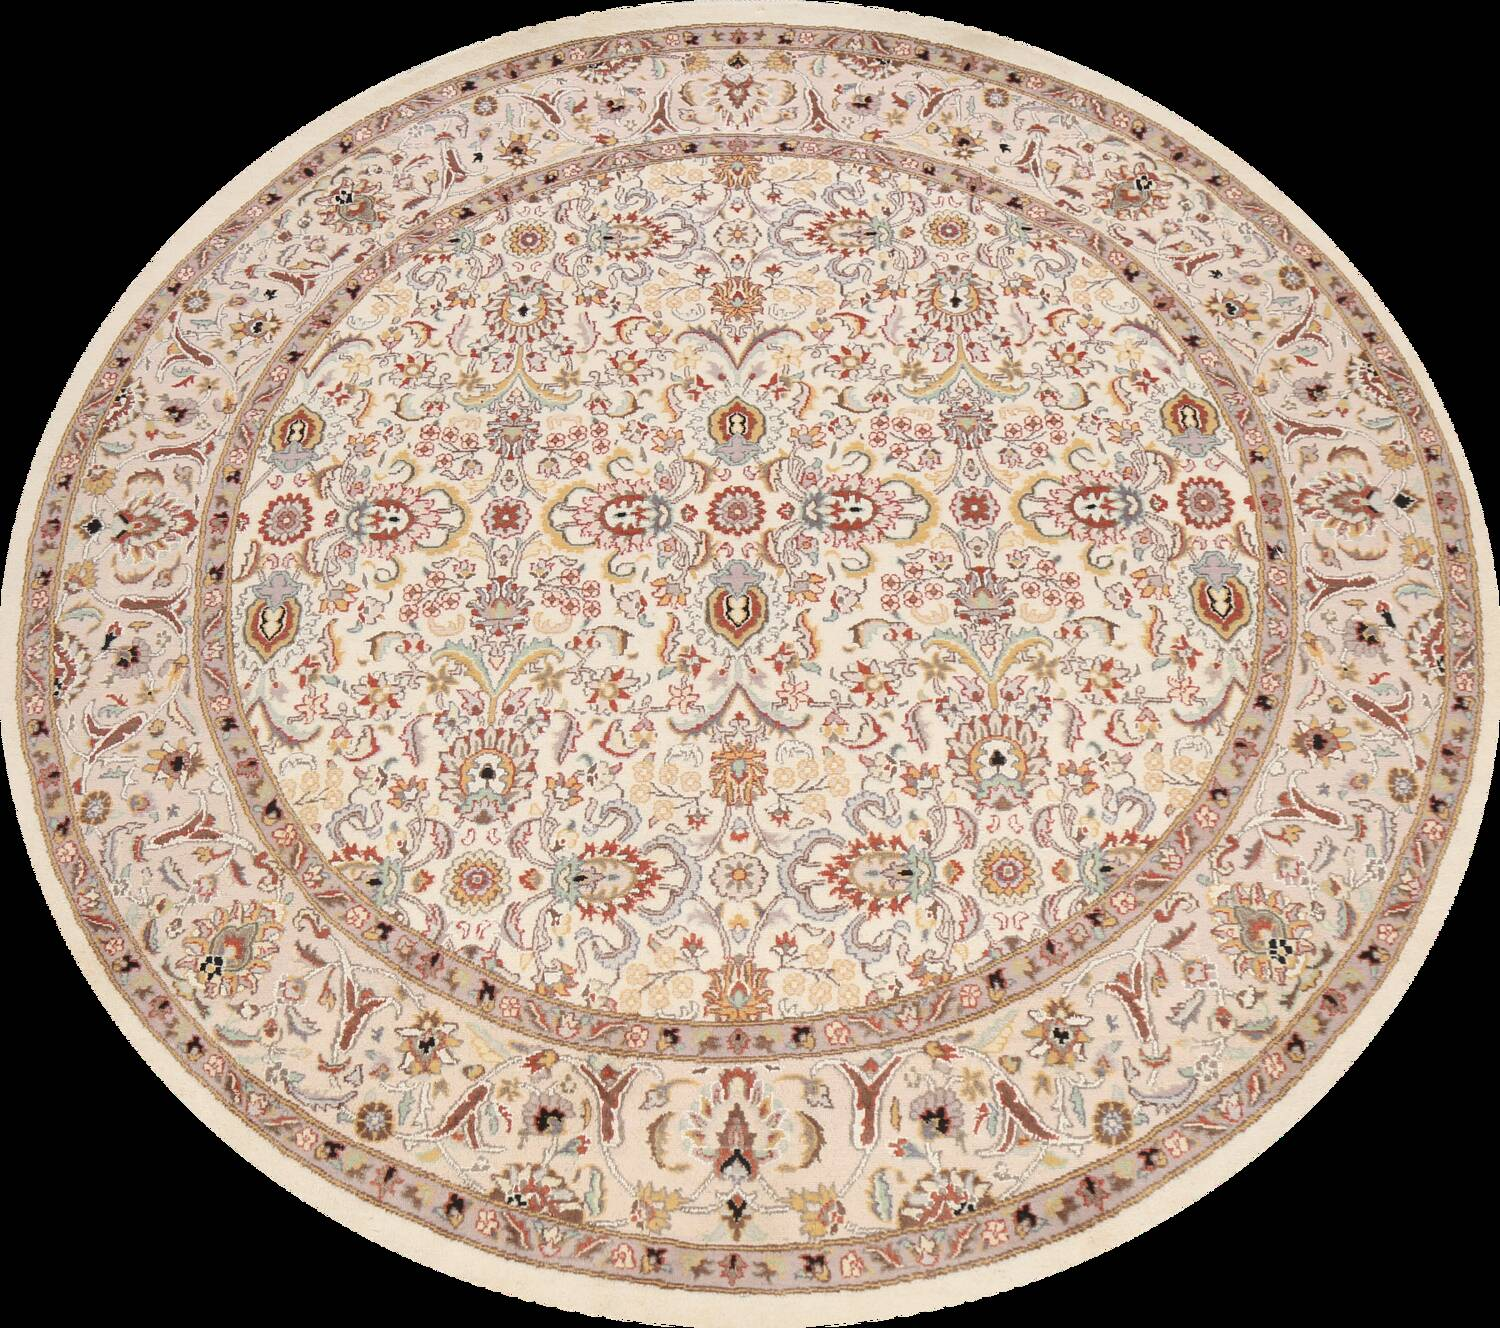 Vegetable Dye Round Royal Tabriz Oriental Area Rug 6x6 image 1